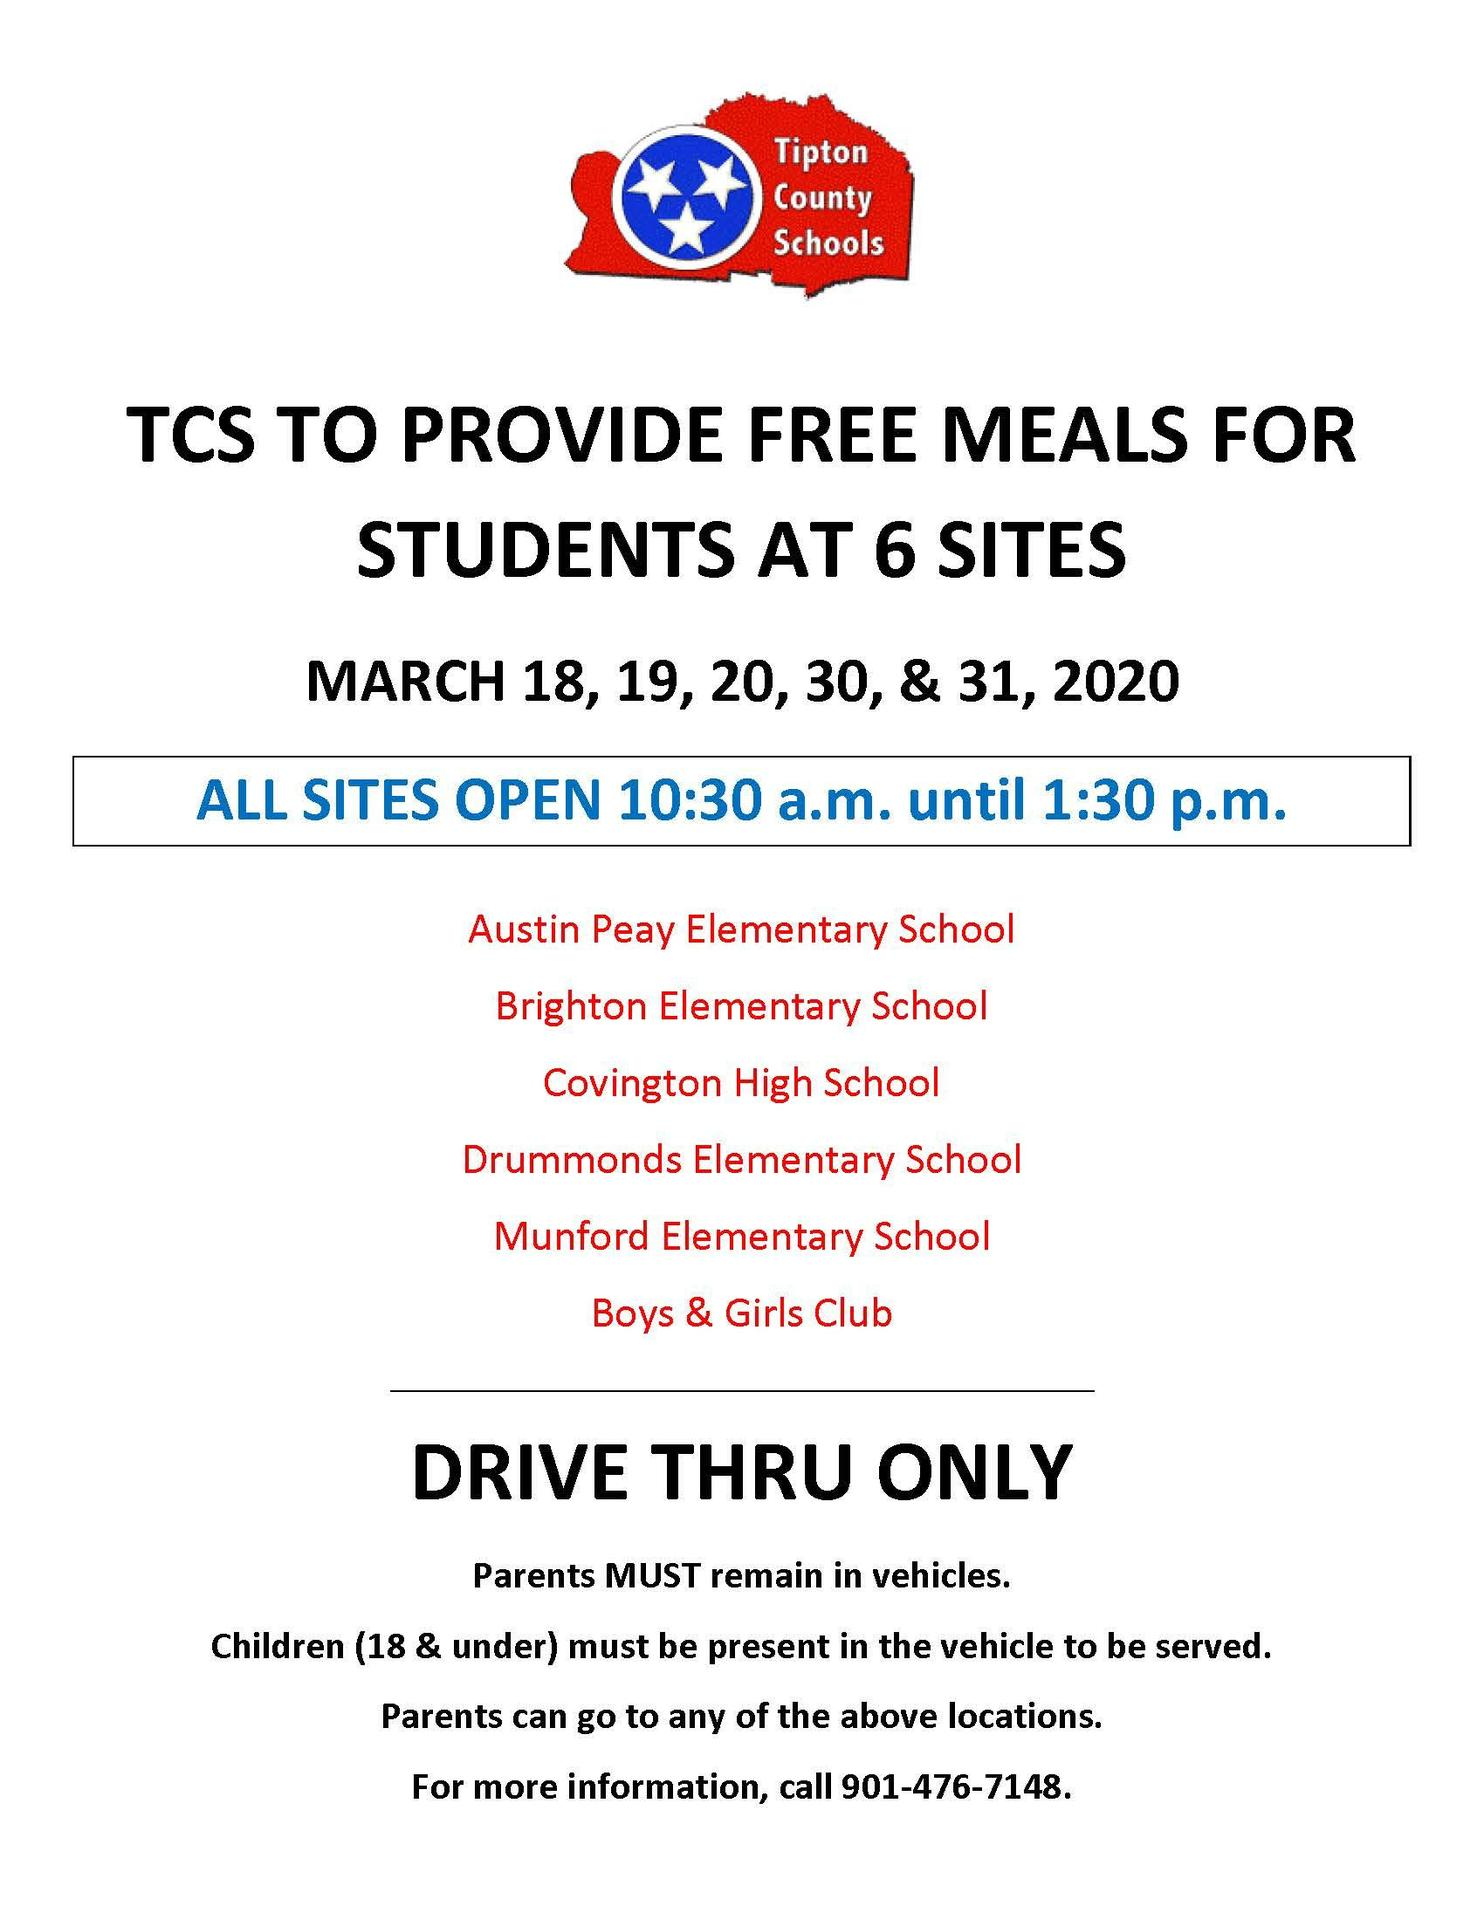 TCS provides free meals